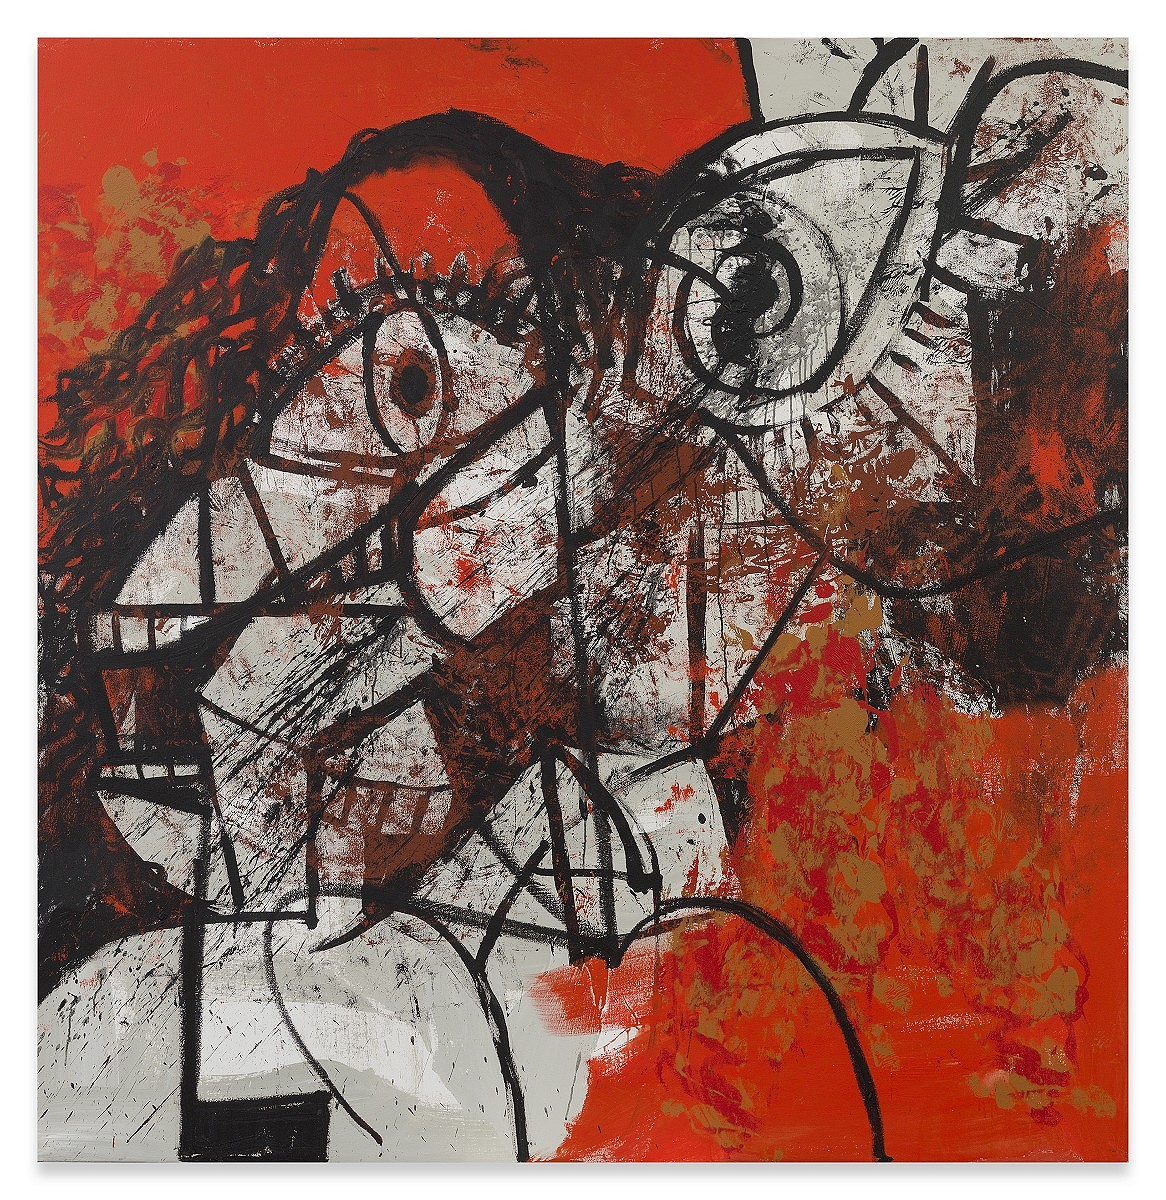 Copyright George Condo / Artists Rights Society (ARS), NY, 2016 Courtesy the artist and Sprüth Magers